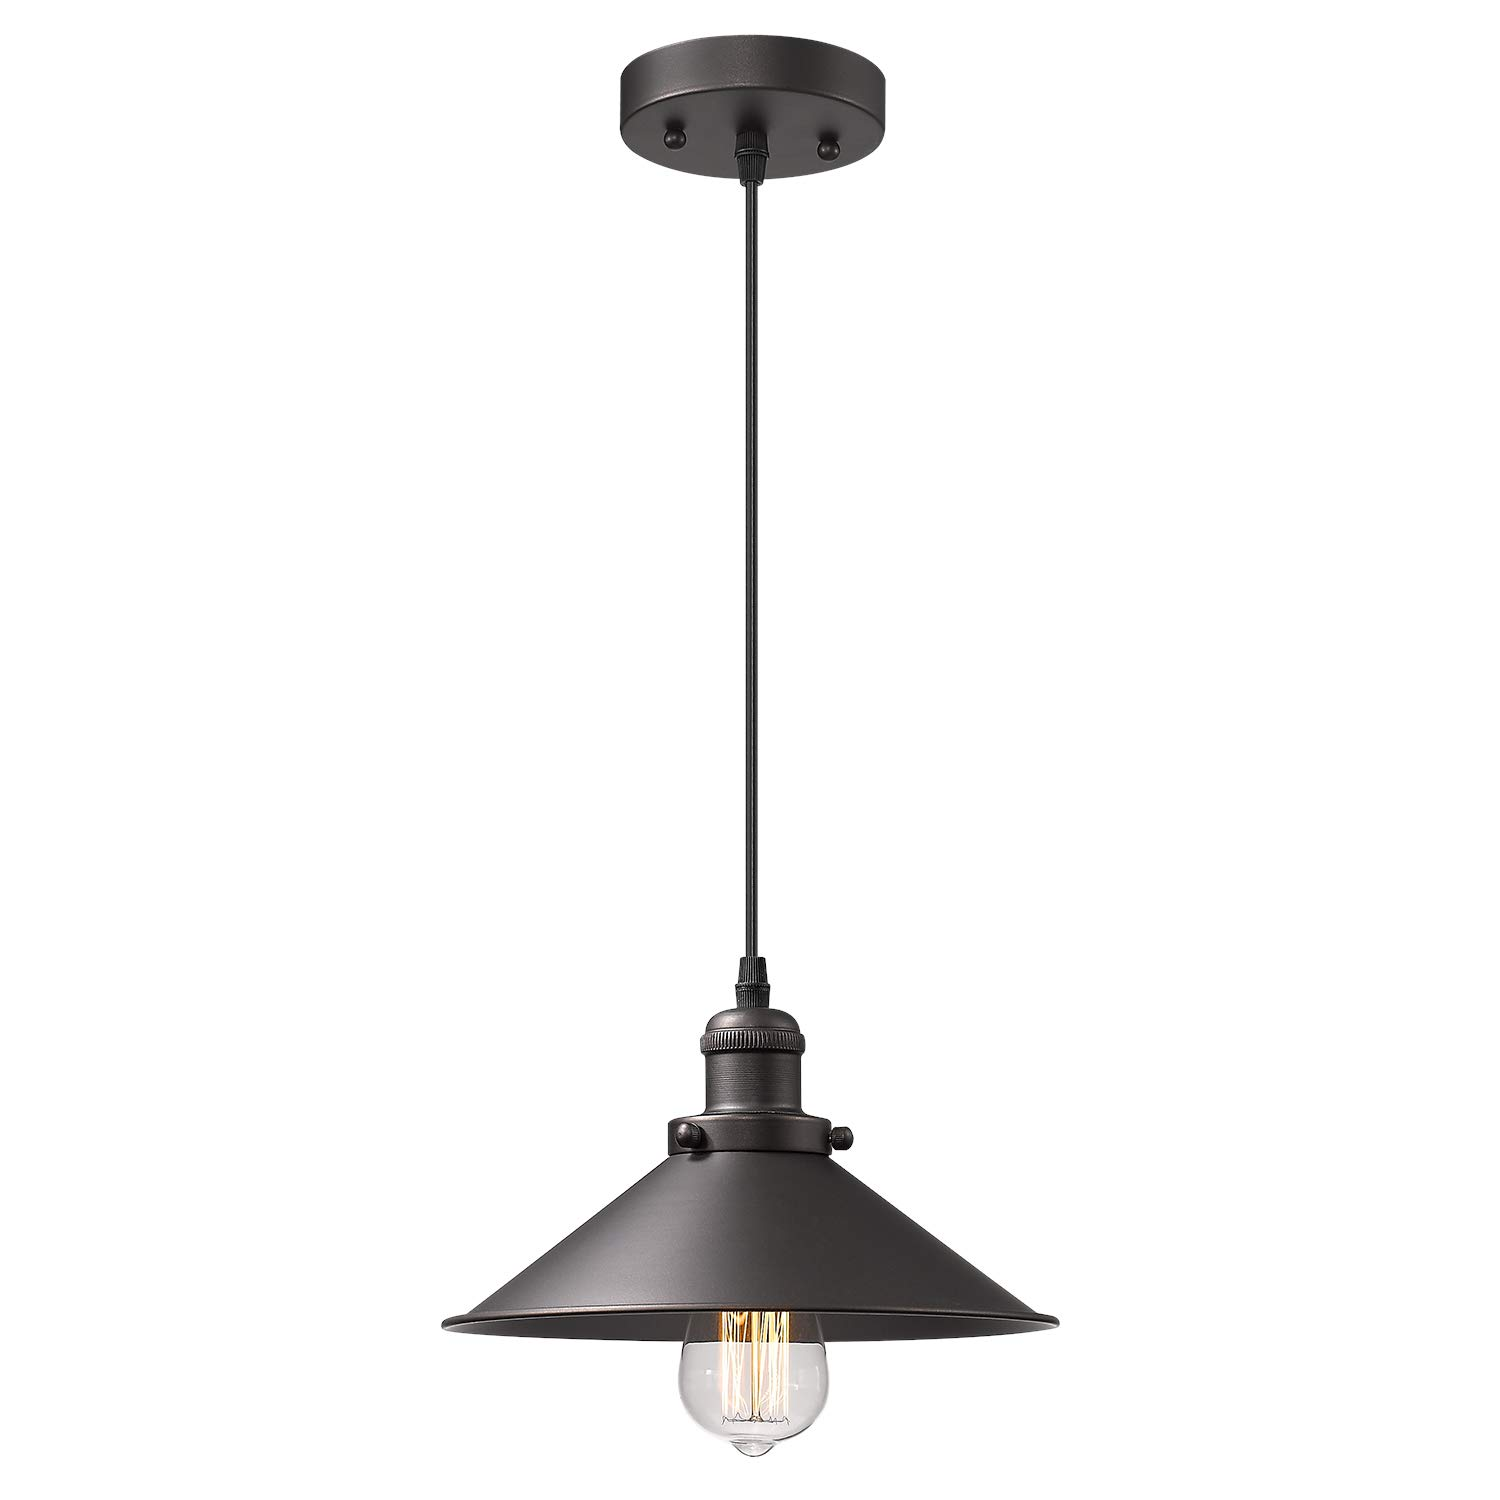 Zeyu Industrial Pendant Light, Vintage Hanging Light Fixture for Dining Room, Oil Rubbed Bronze Finish with Metal Shade, 102-1 ORB